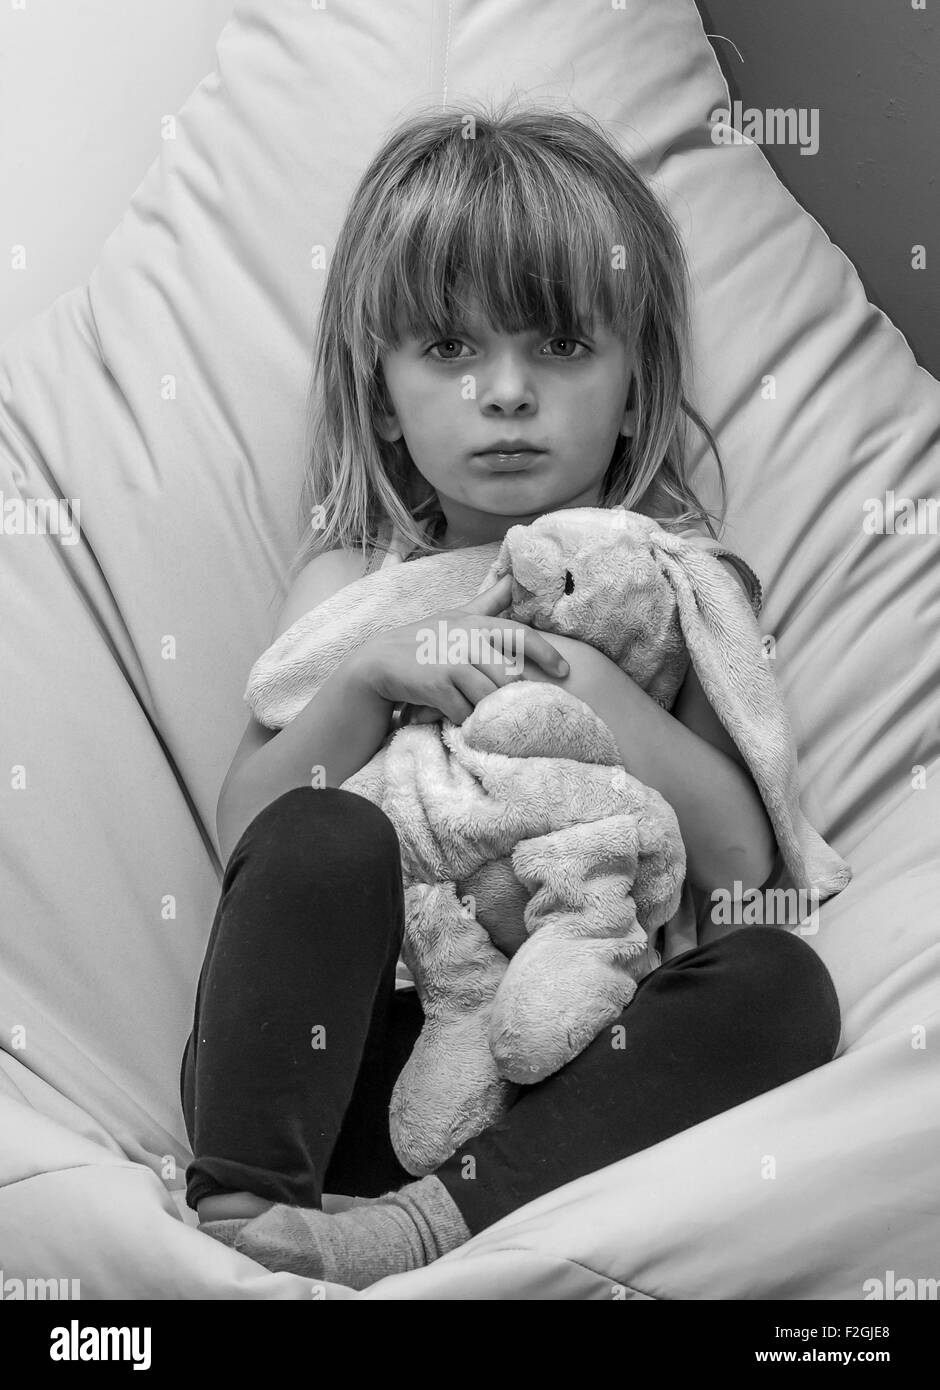 Unhappy little girl cuddling a toy rabbit. - Stock Image